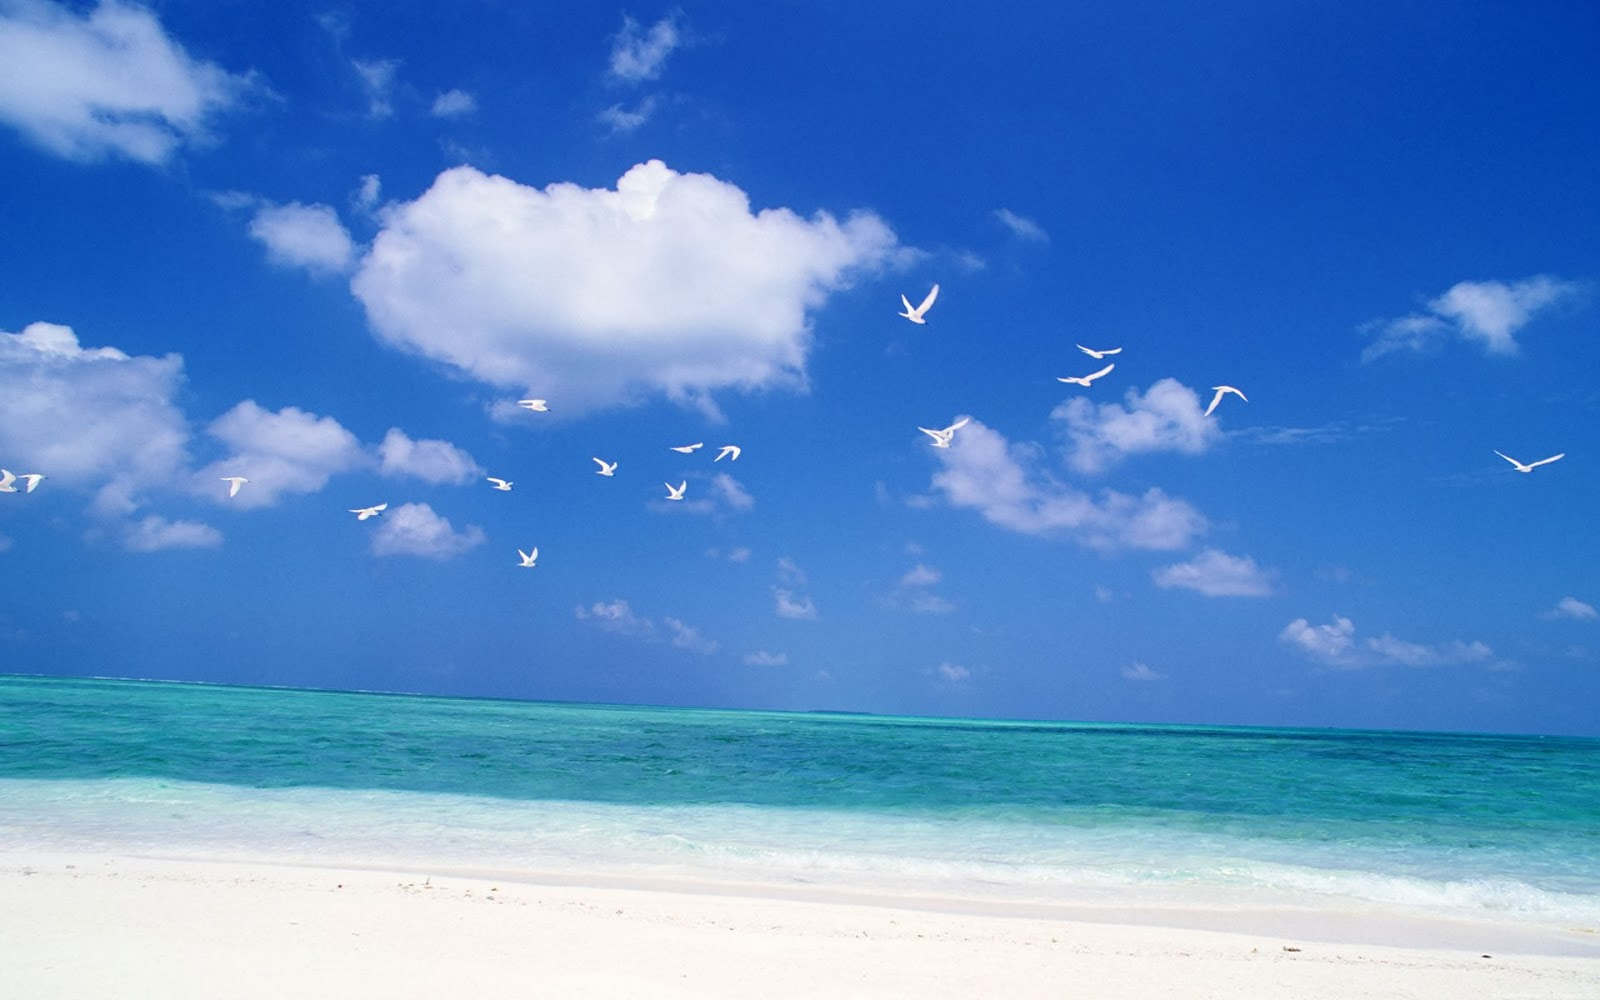 Beach Sky Wallpaper Beautiful Nature Images And Wallpapers